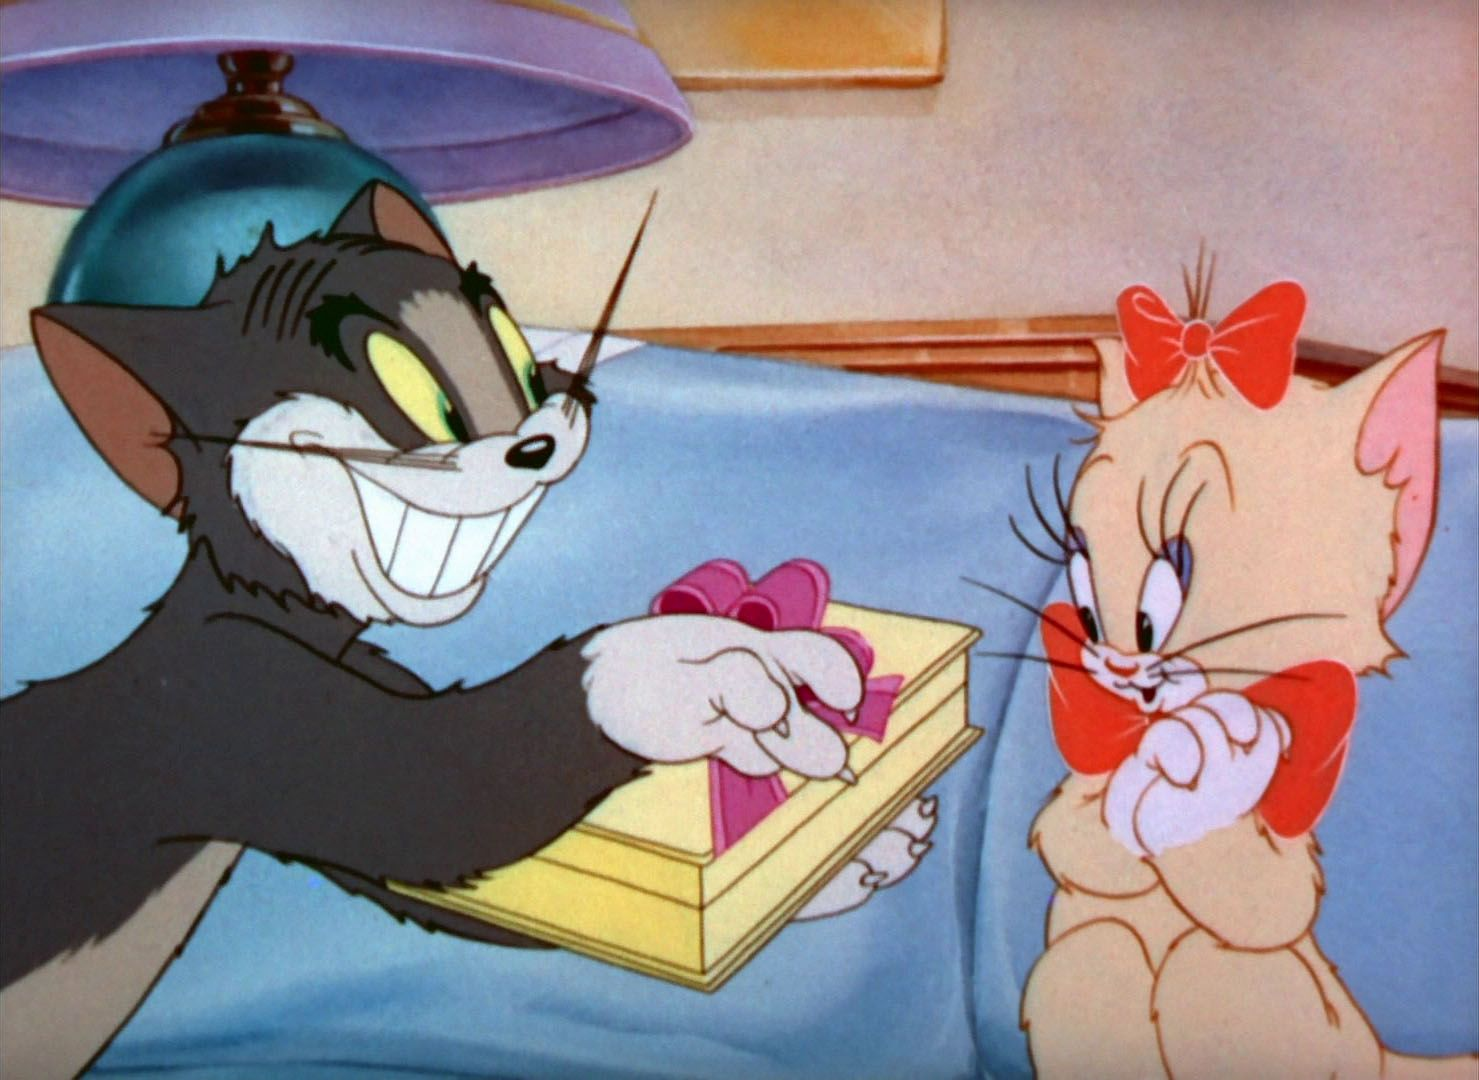 Tom & Jerry Pictures | Tom and jerry, Tom and jerry pictures, Tom and jerry  cartoon